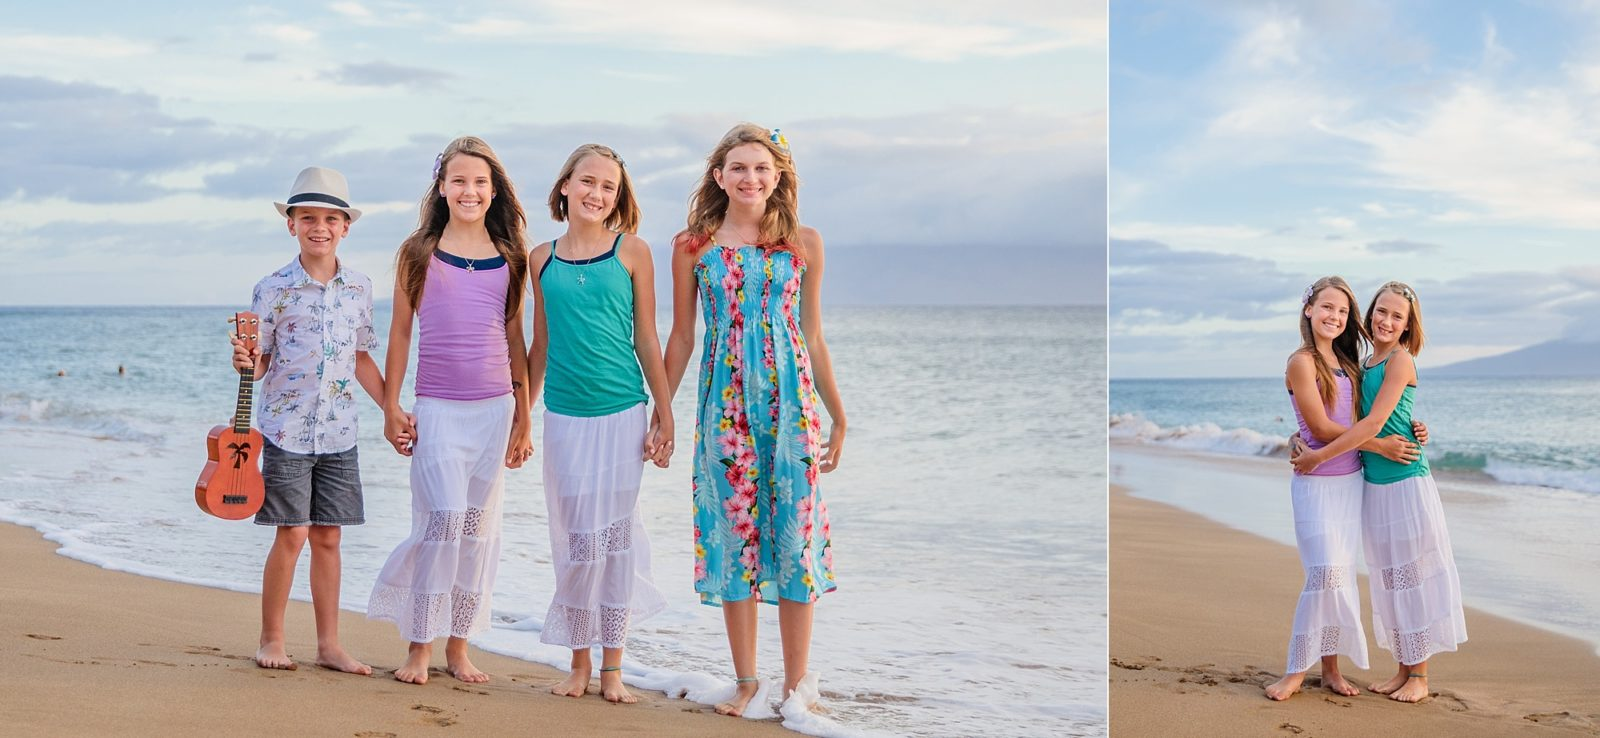 Beach Photography | Family Beach Photos